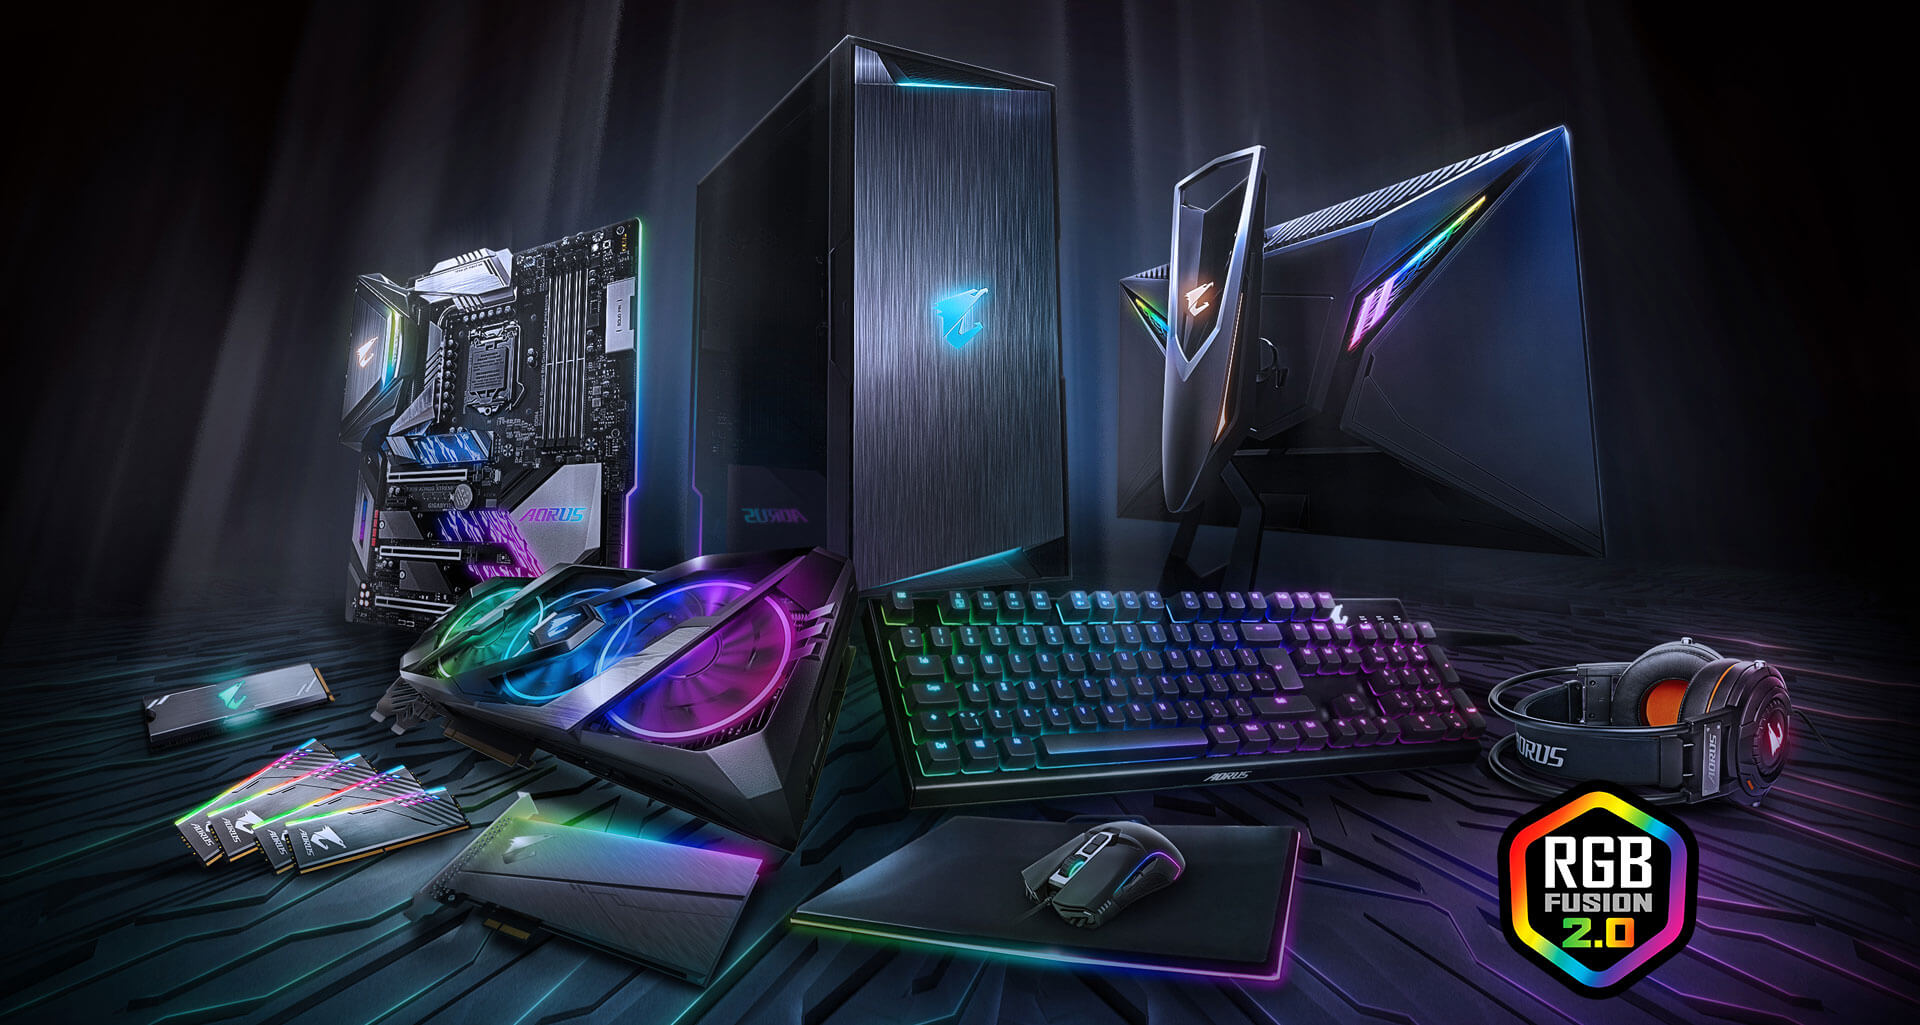 Z390 Aorus Pro Wifi Led Wiring Diagram Multiple Drivers Rgb Fusion 20 Is The Software That Brings It All Together Letting Your Accessories Synchronize To Same Beat Customize Leds How You